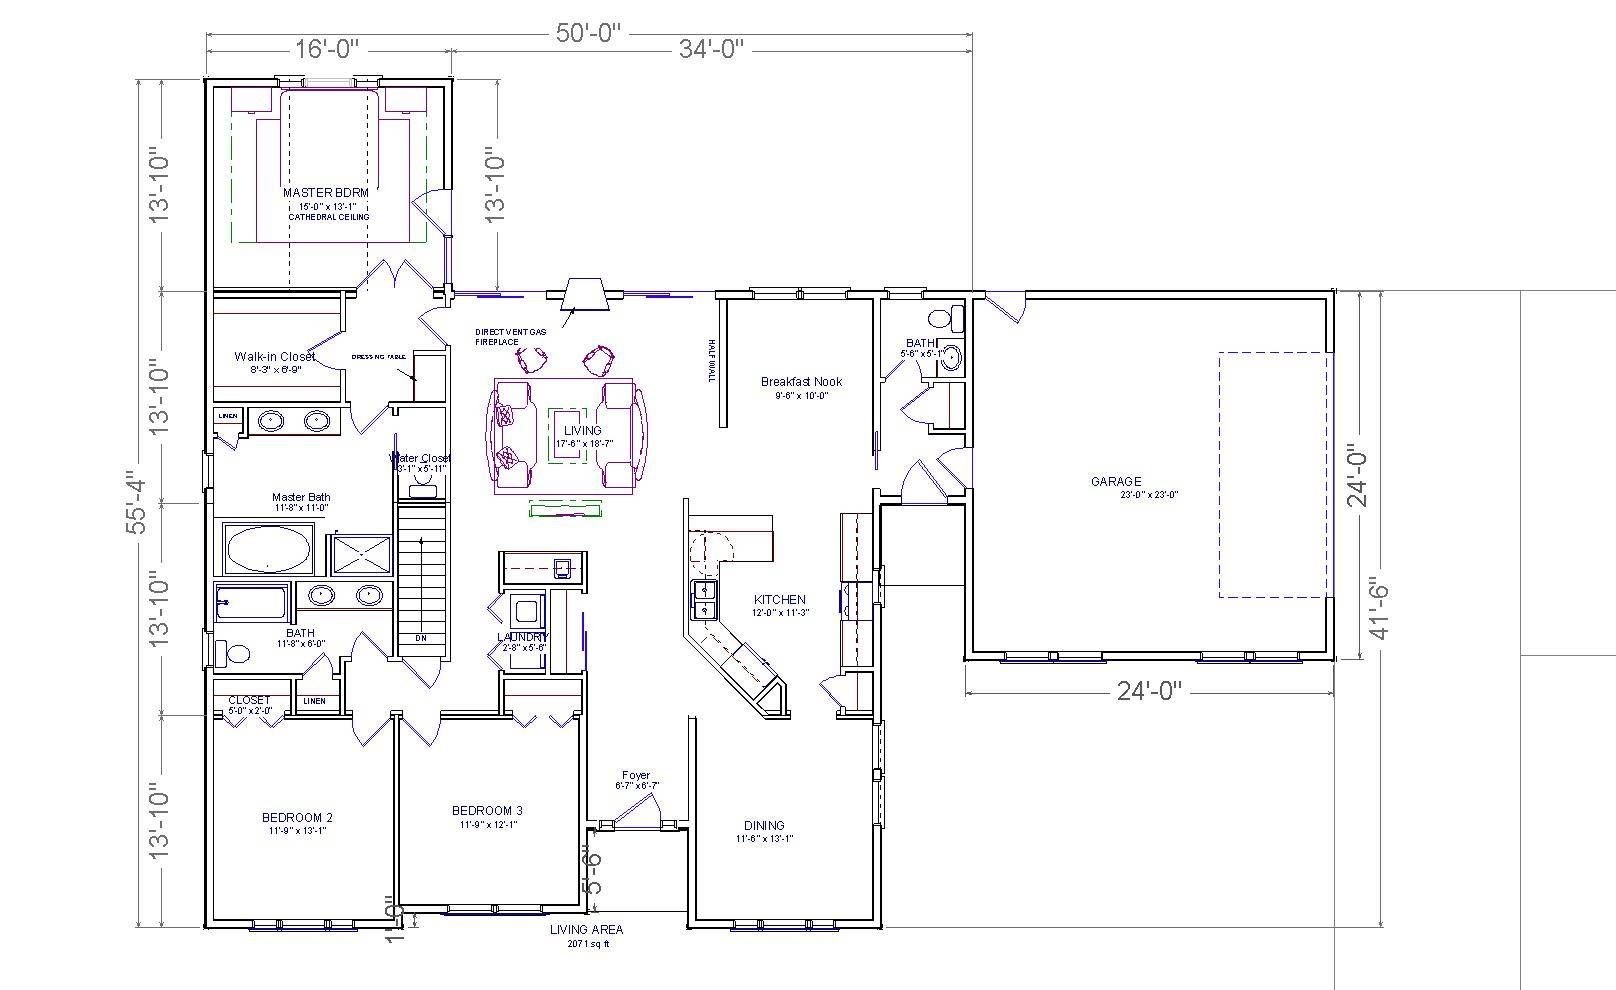 28 modular home additions floor plans home plans amp design modular home additions floor plans hive house plans house free download home plans ideas picture